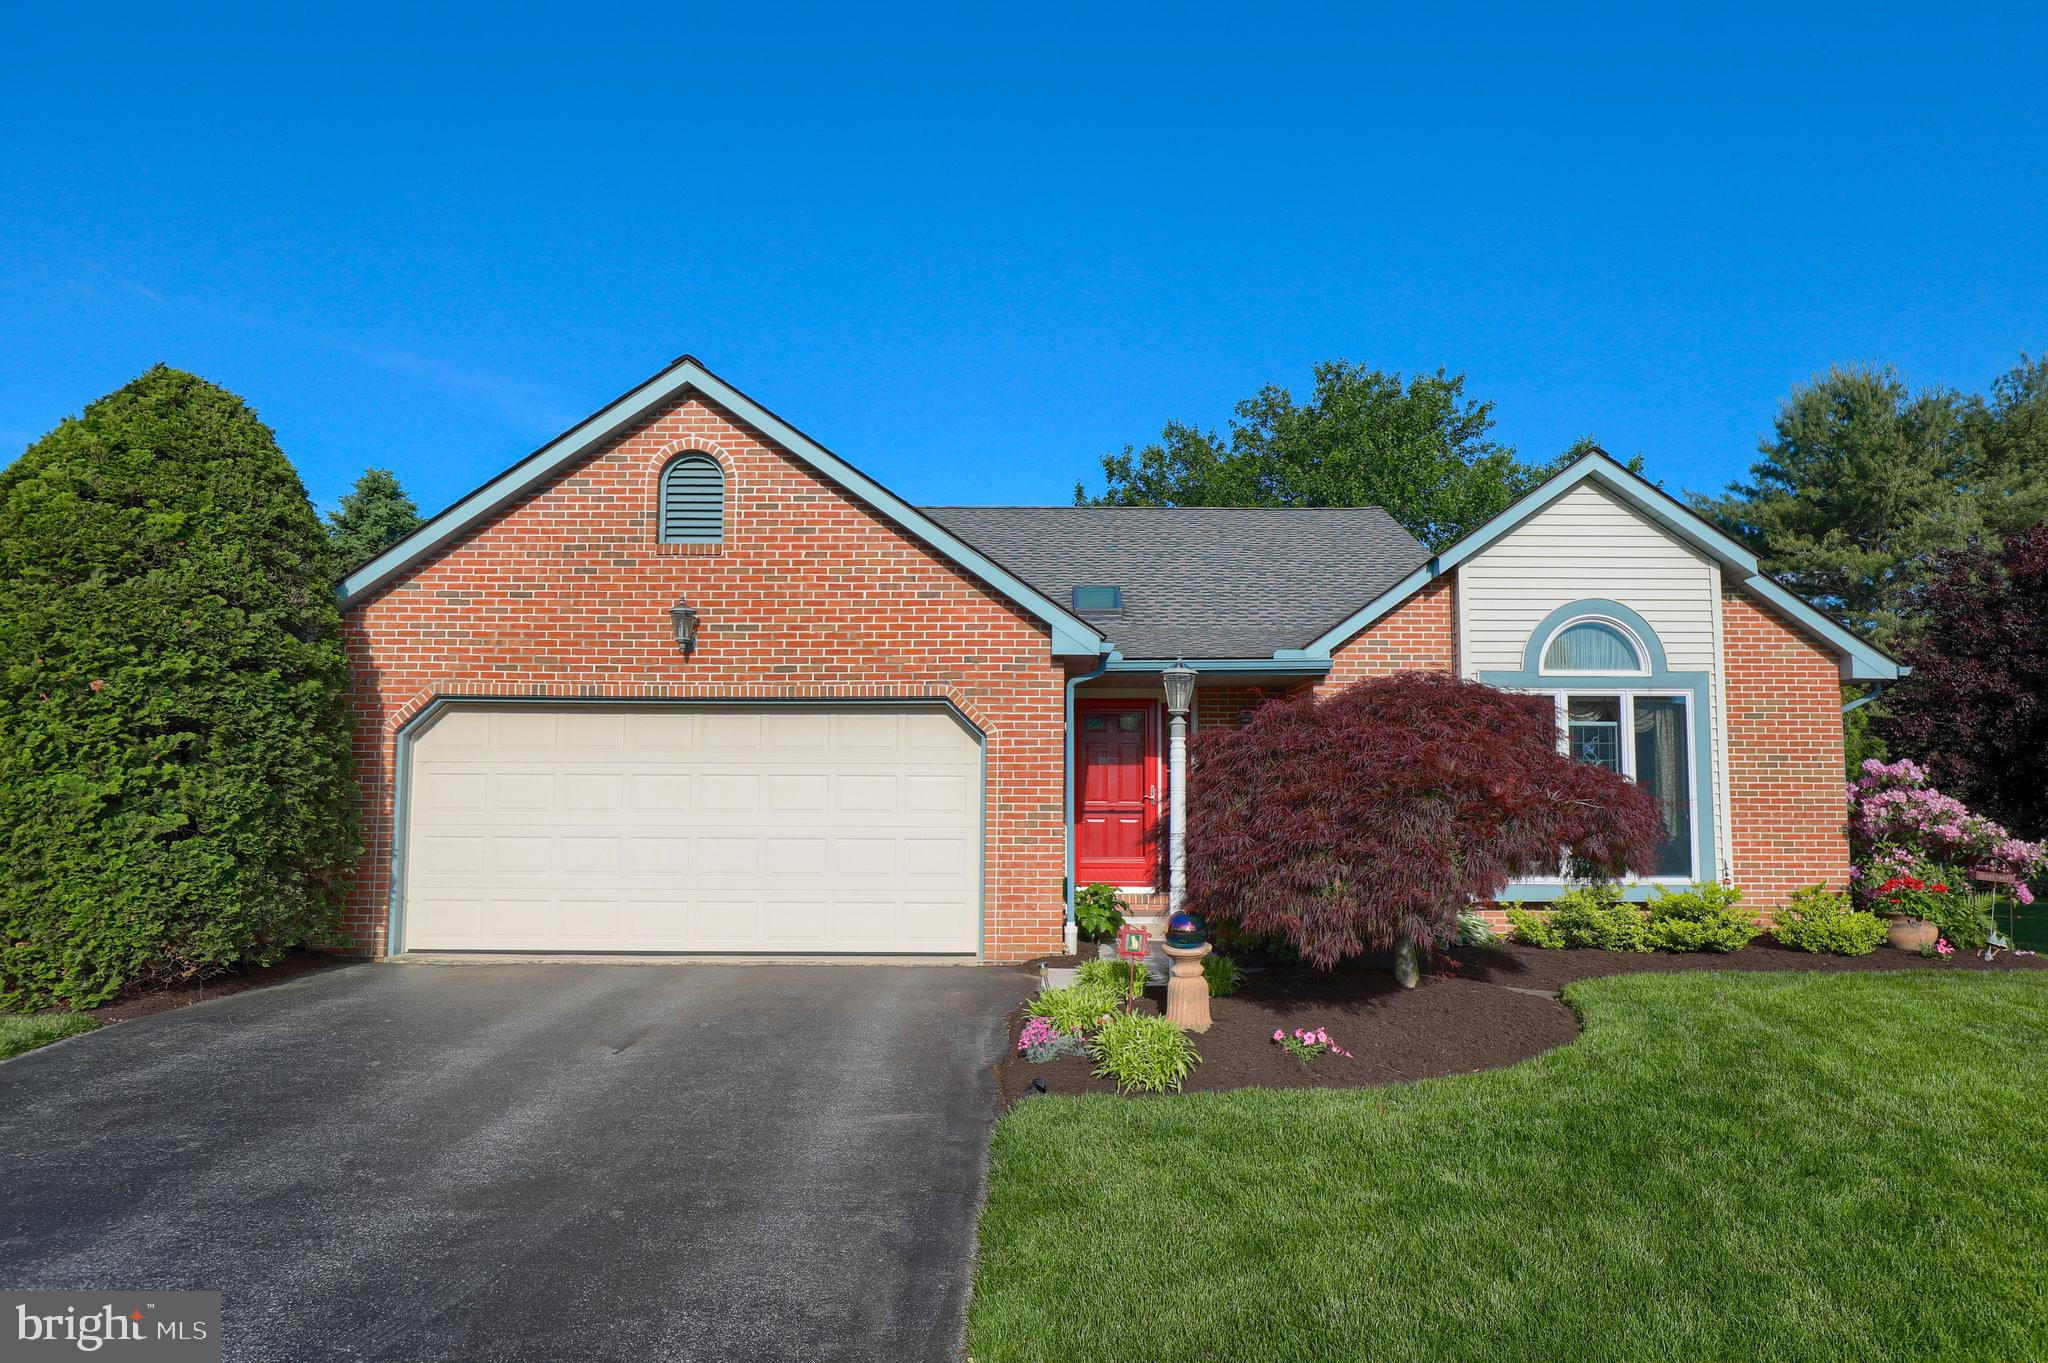 11 KEITH COURT, STEVENS, PA 17578